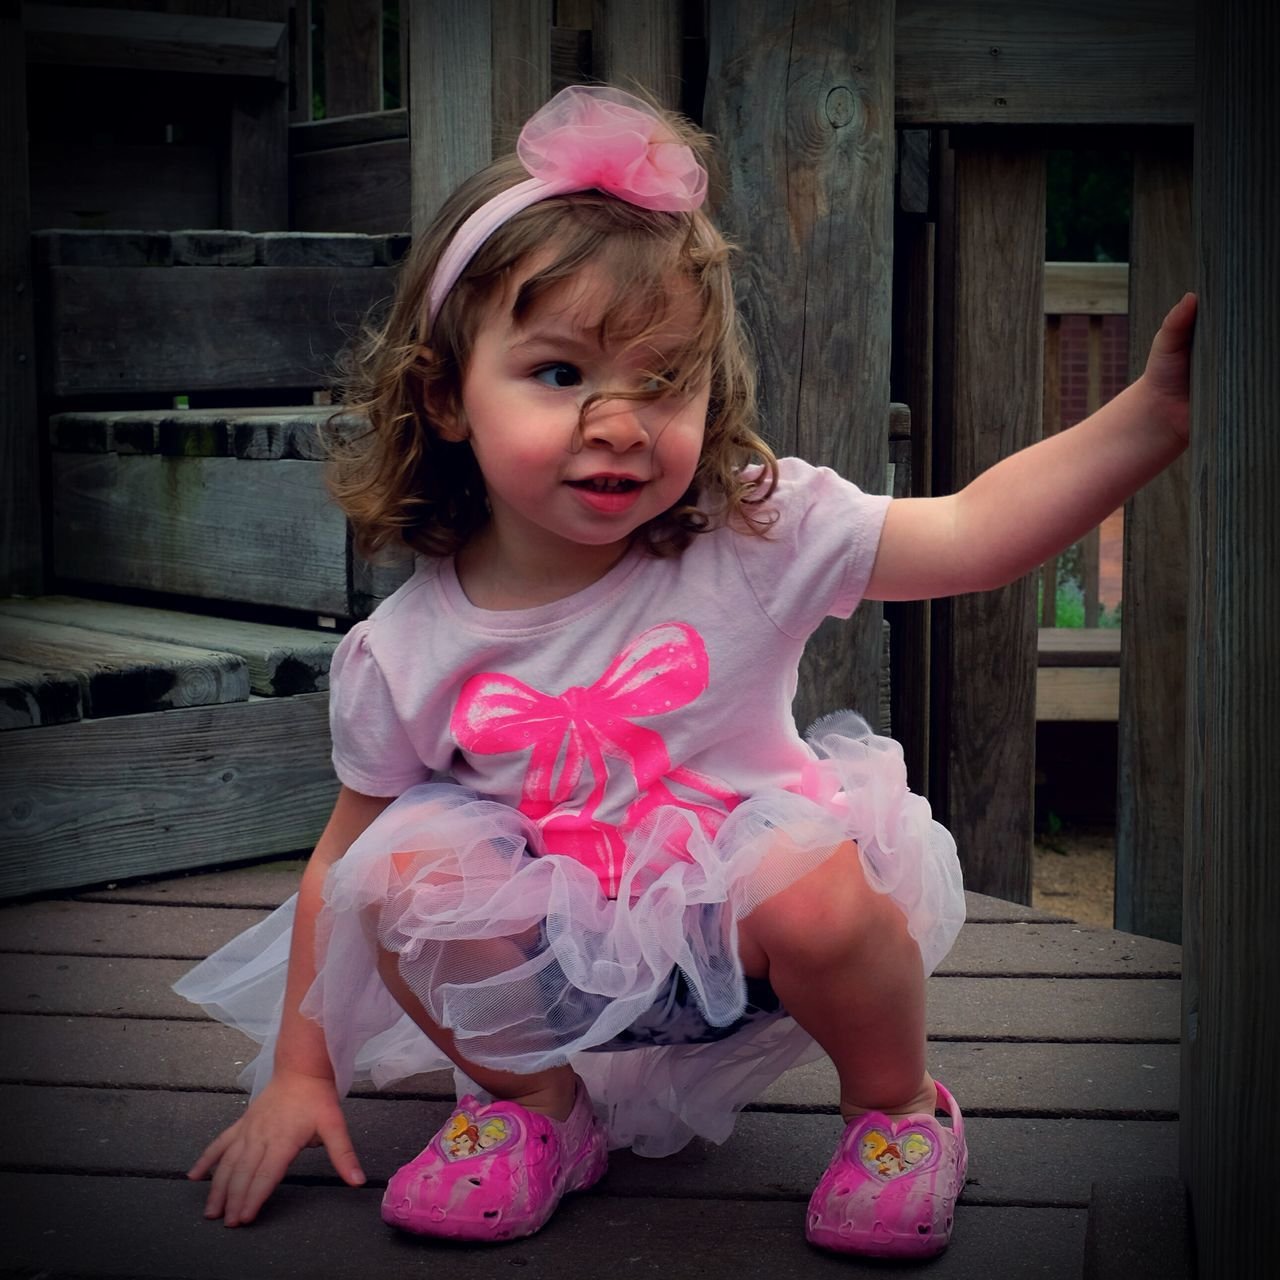 Little girl squatting outdoors